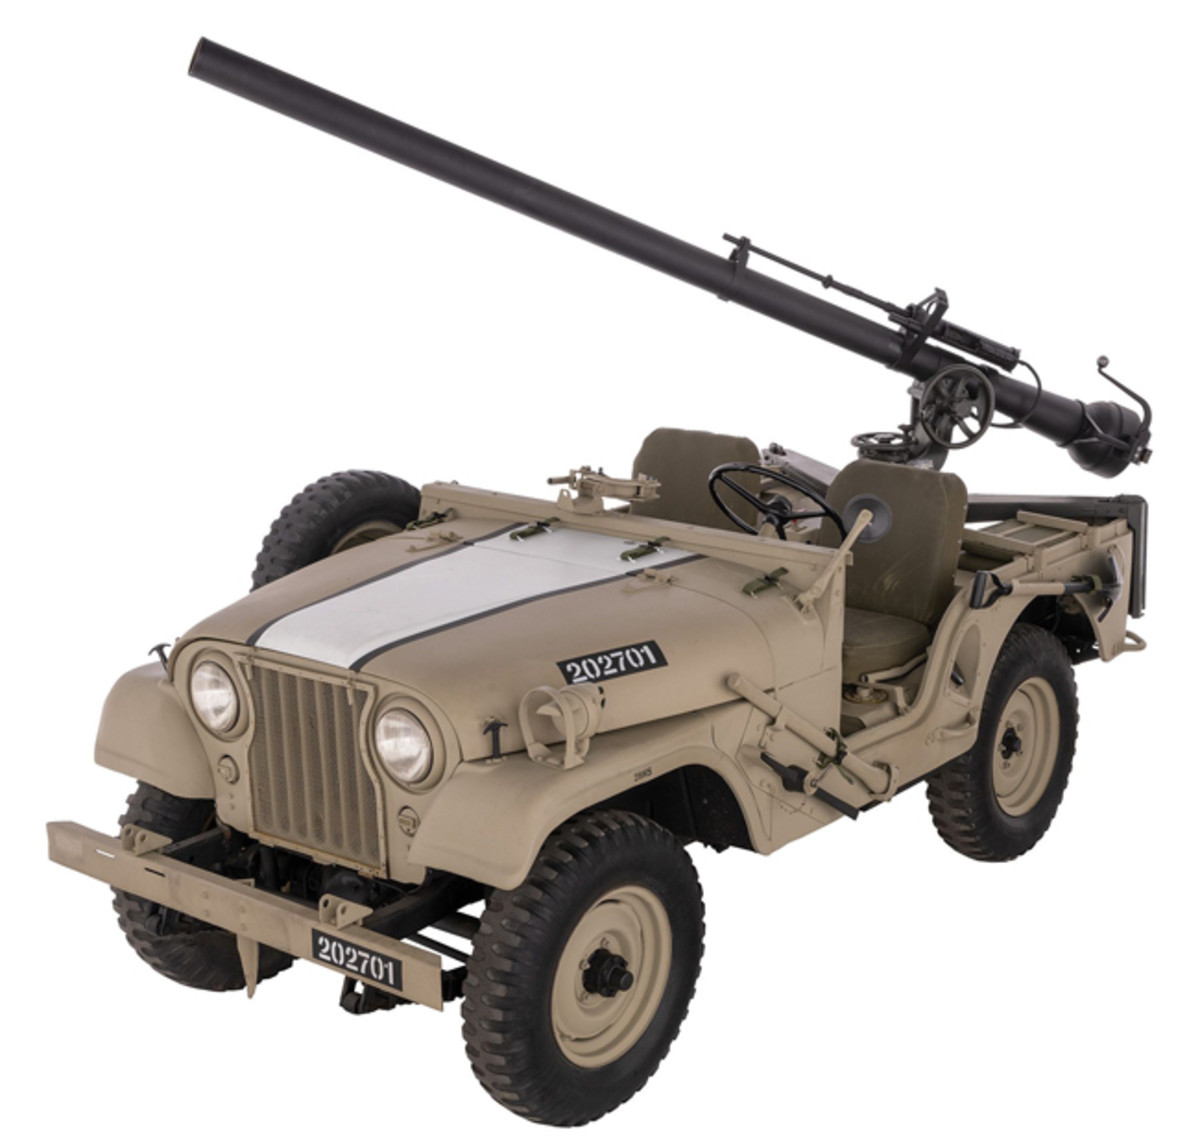 Lot 1425: Israeli Army CJ-5 Jeep with M70 Recoilless Rifle. Sold for 17,250